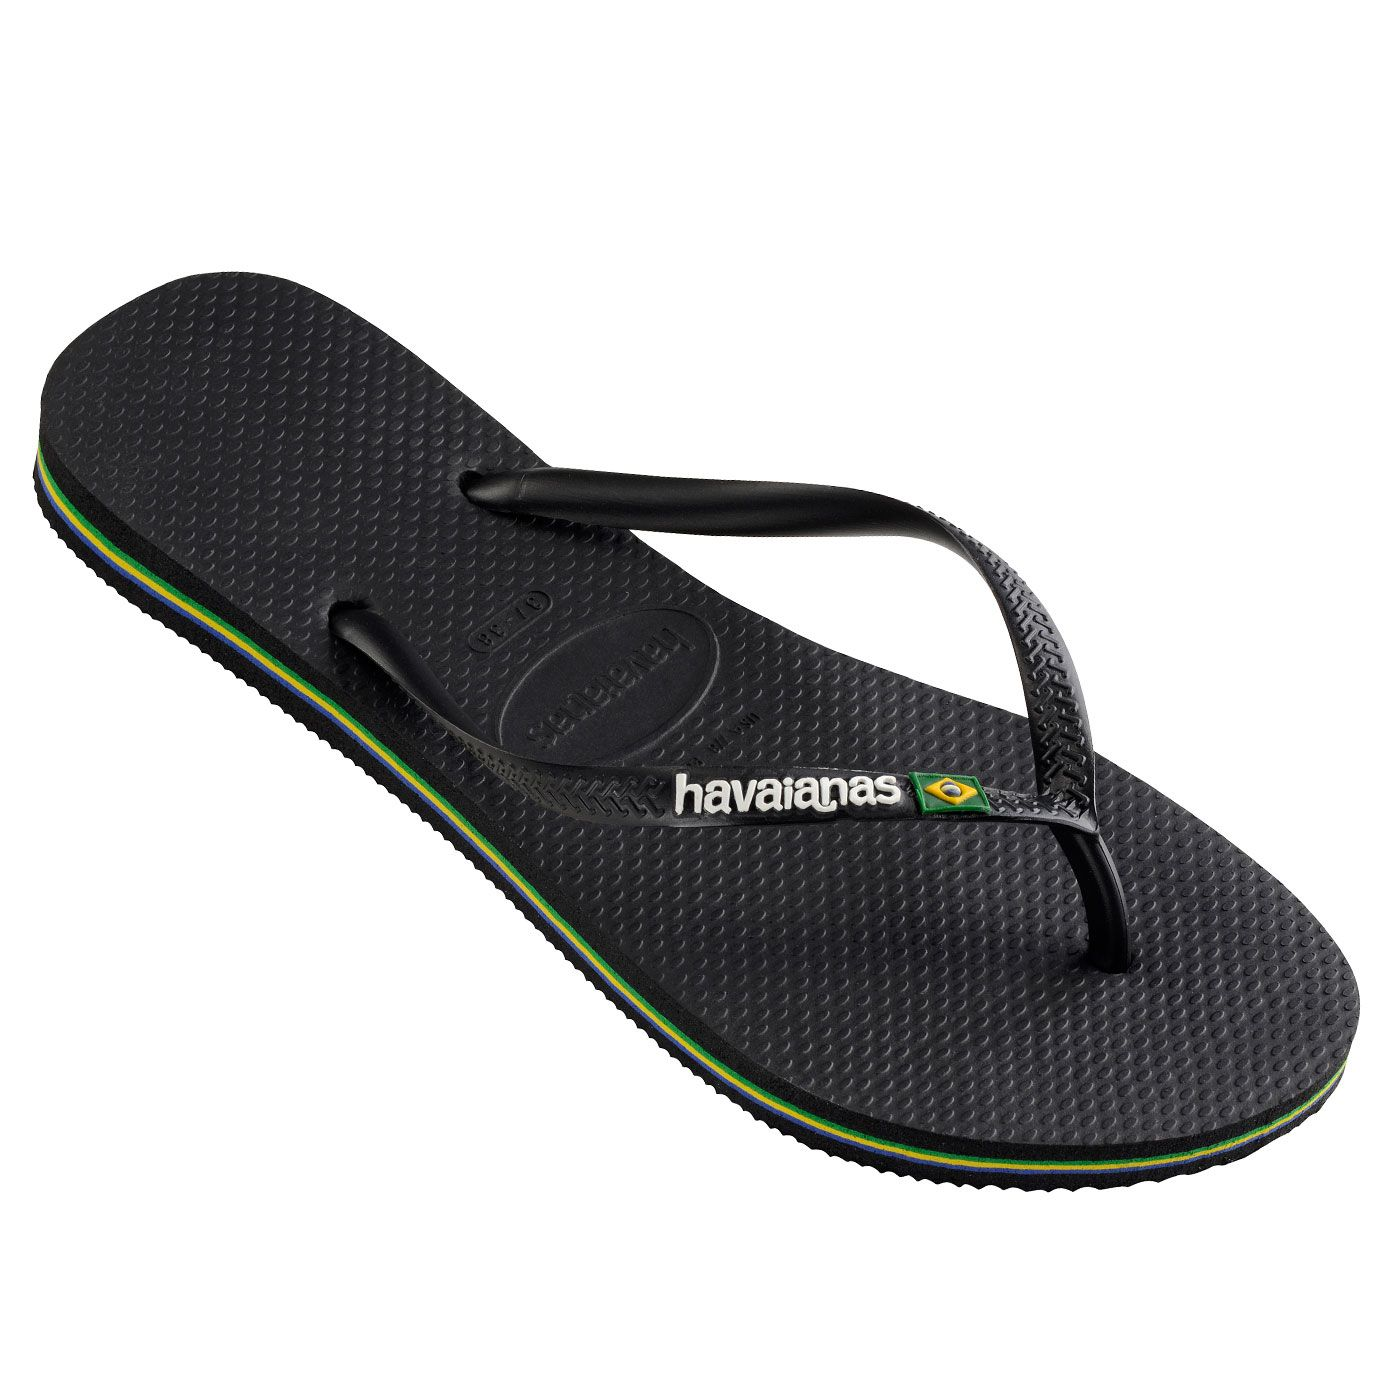 7ad324c31286 Havaianas Slim Brazil Flag Thongs. Step into summer in style in our new  season style